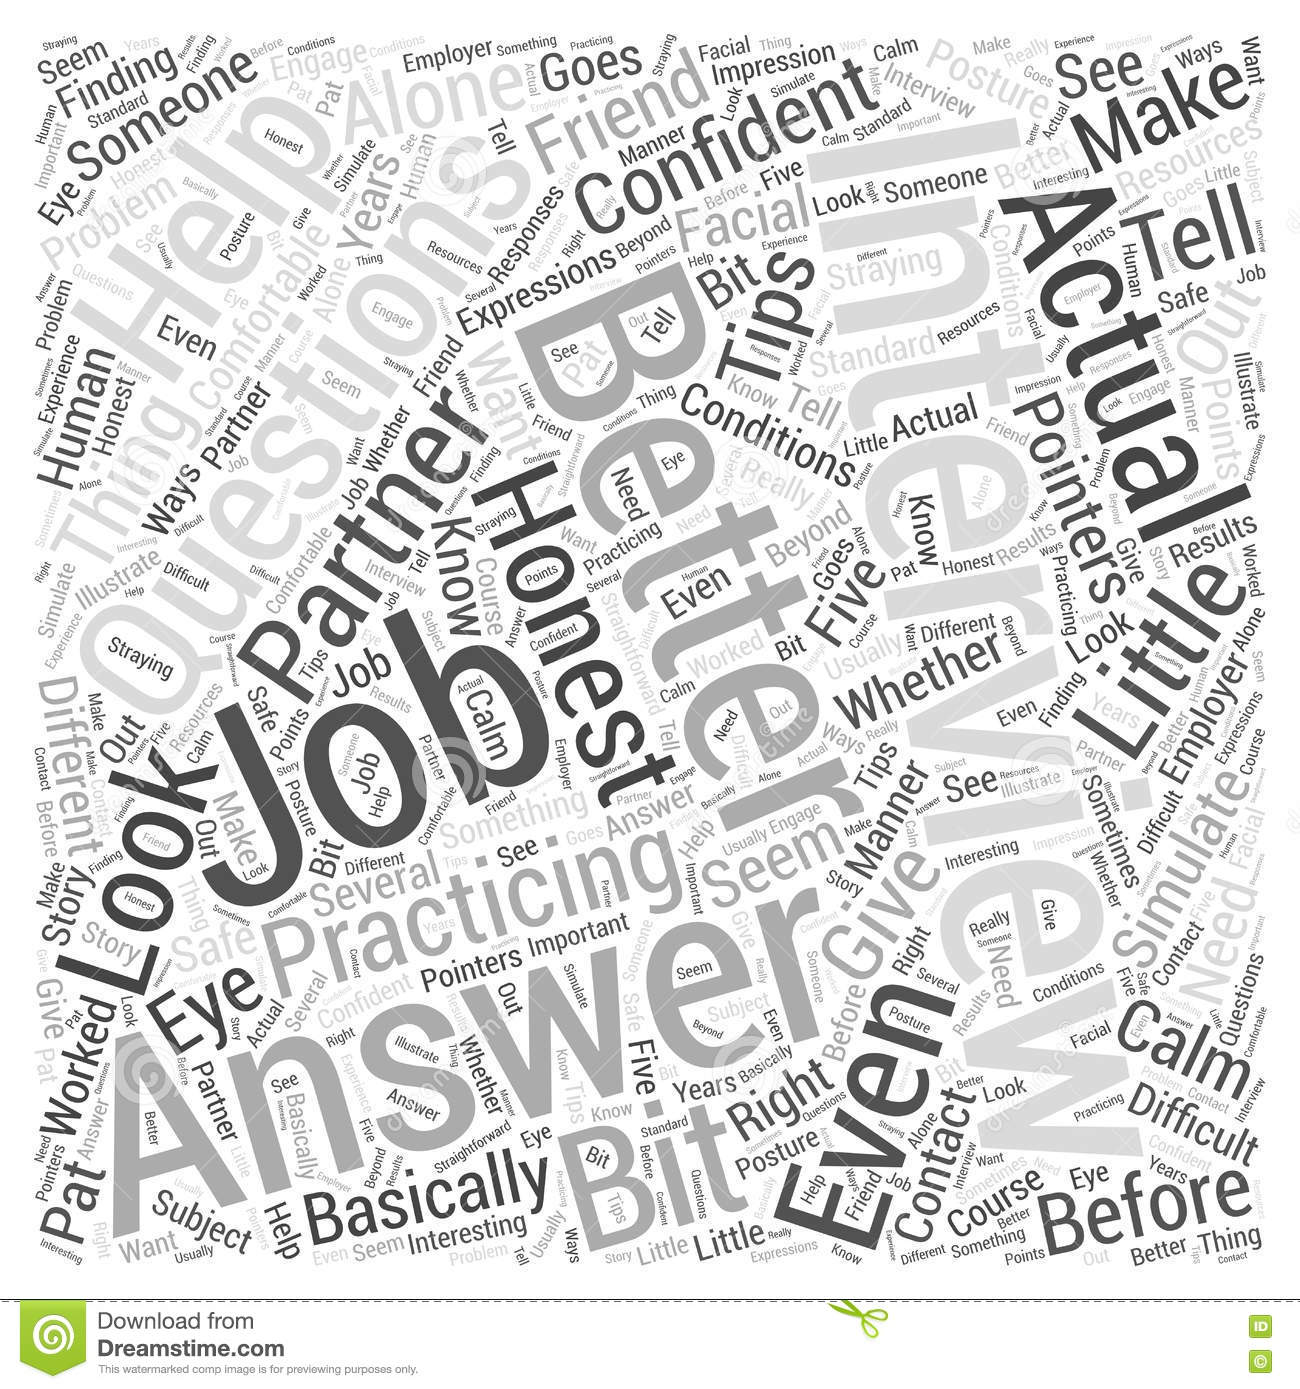 answer job interview questions 04 word cloud concept vector answer job interview questions 04 word cloud concept vector background